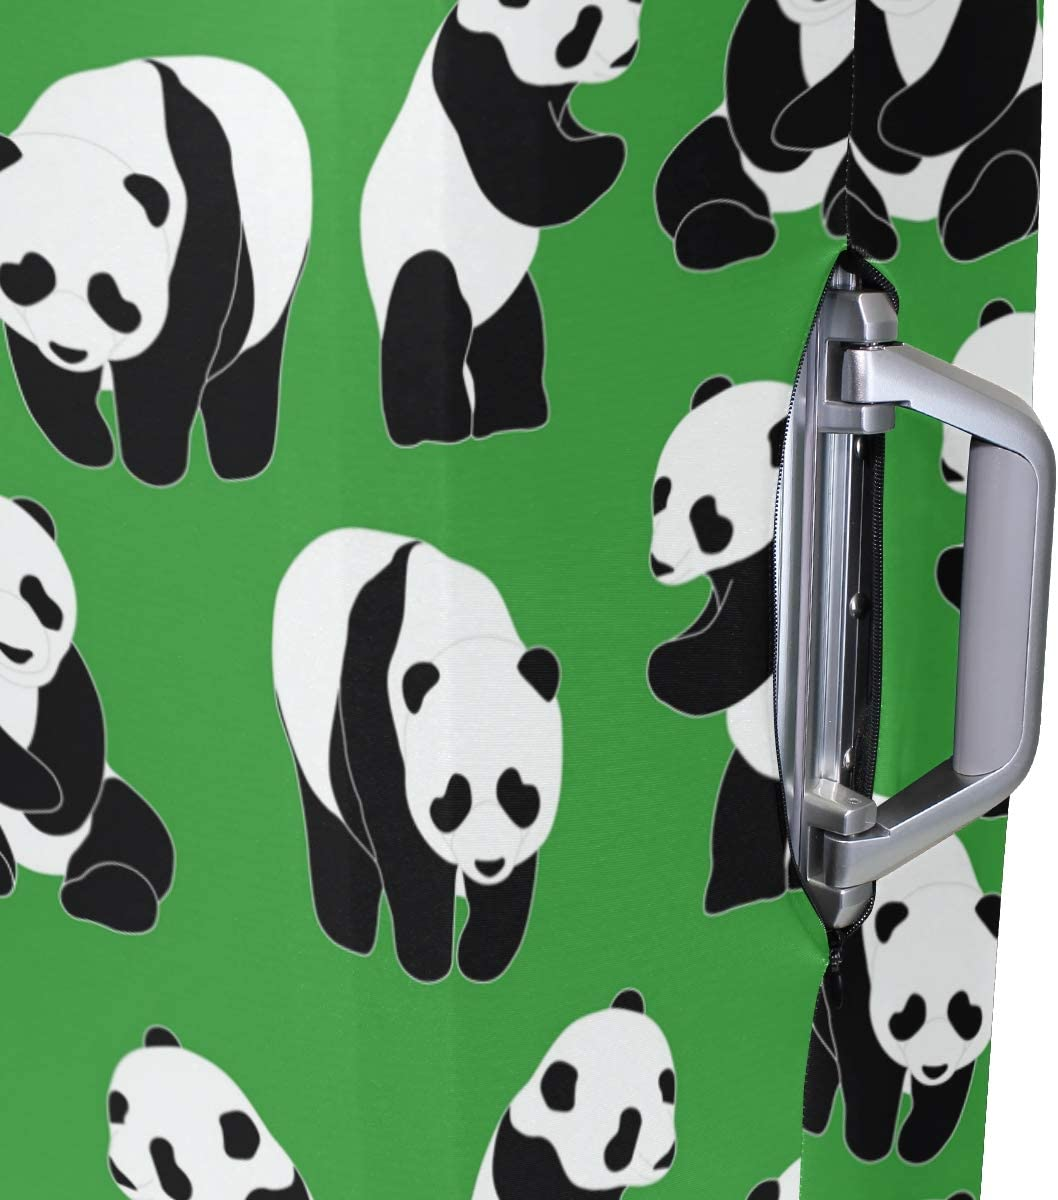 Baggage Covers Chinese Panda Pattern Green Background Washable Protective Case